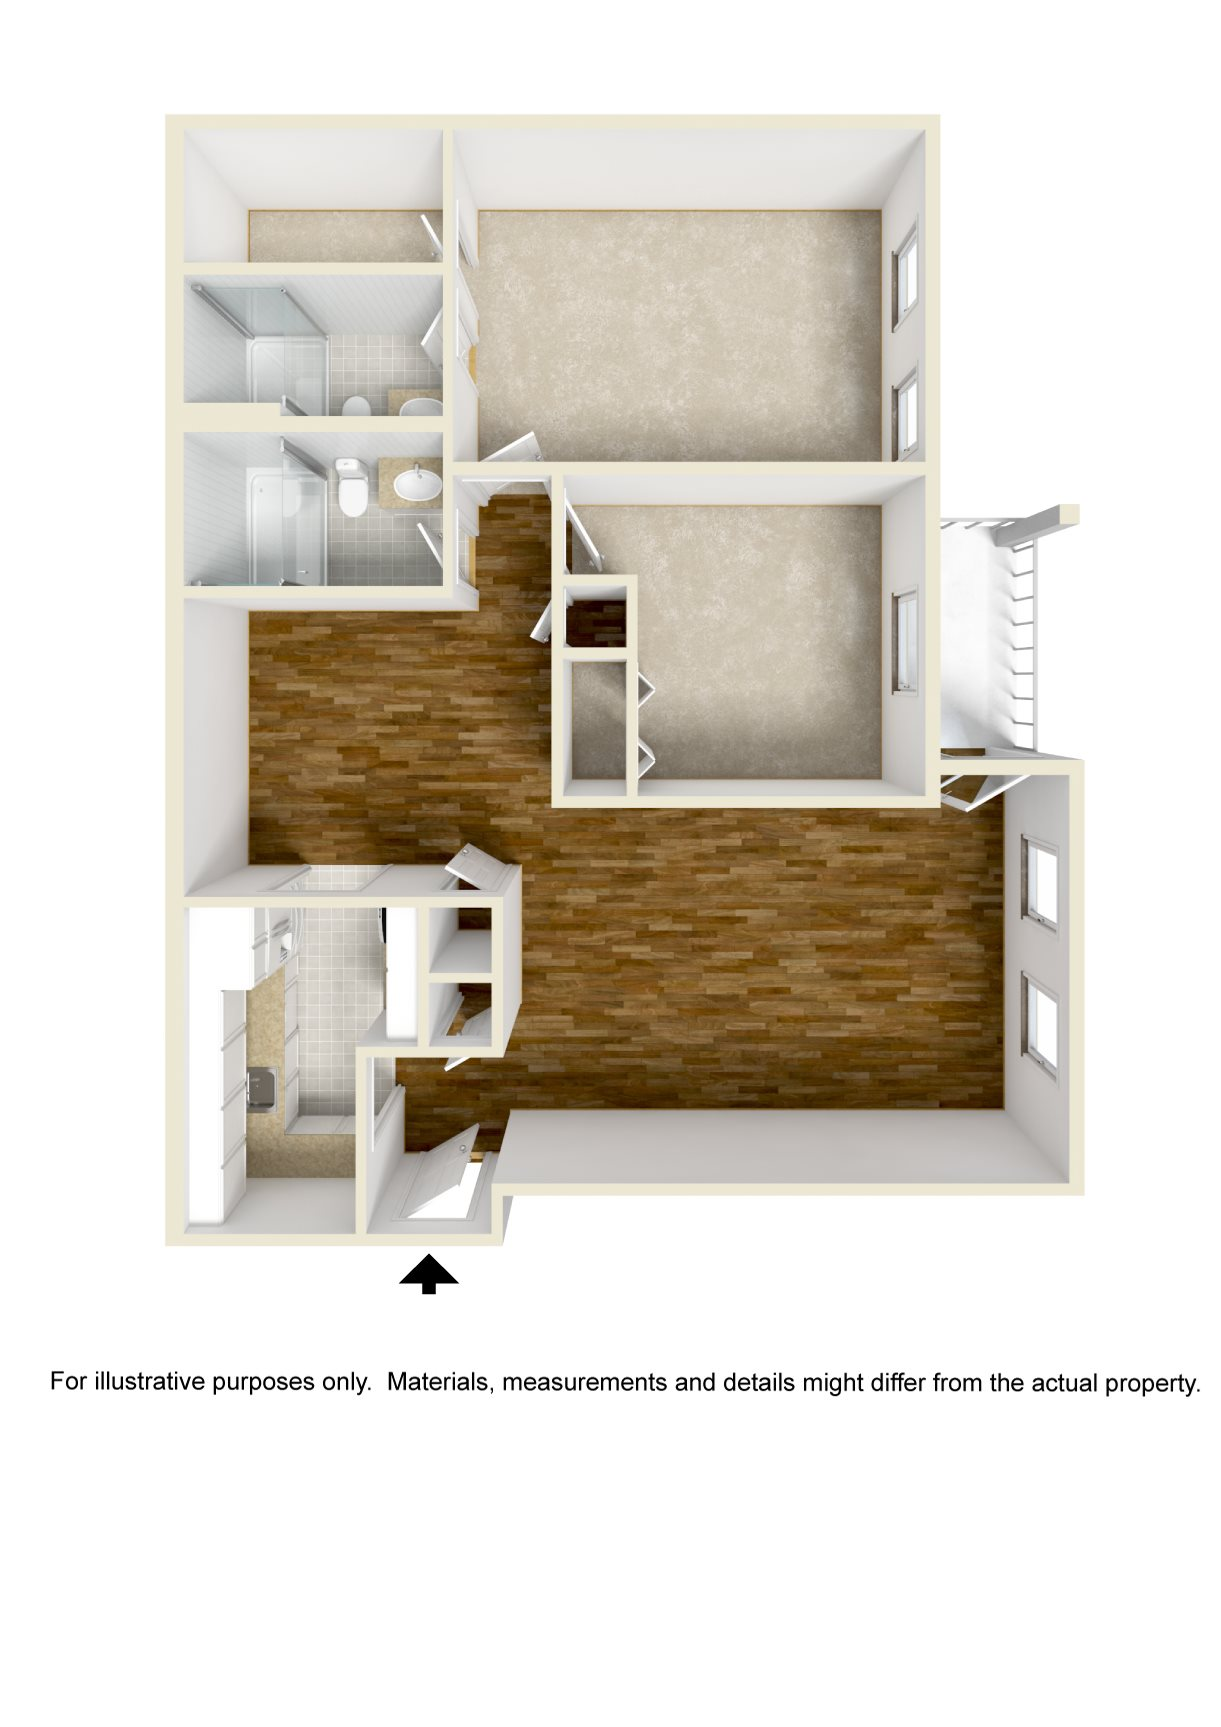 2 Bed - 2 Bath Floor Plan 2